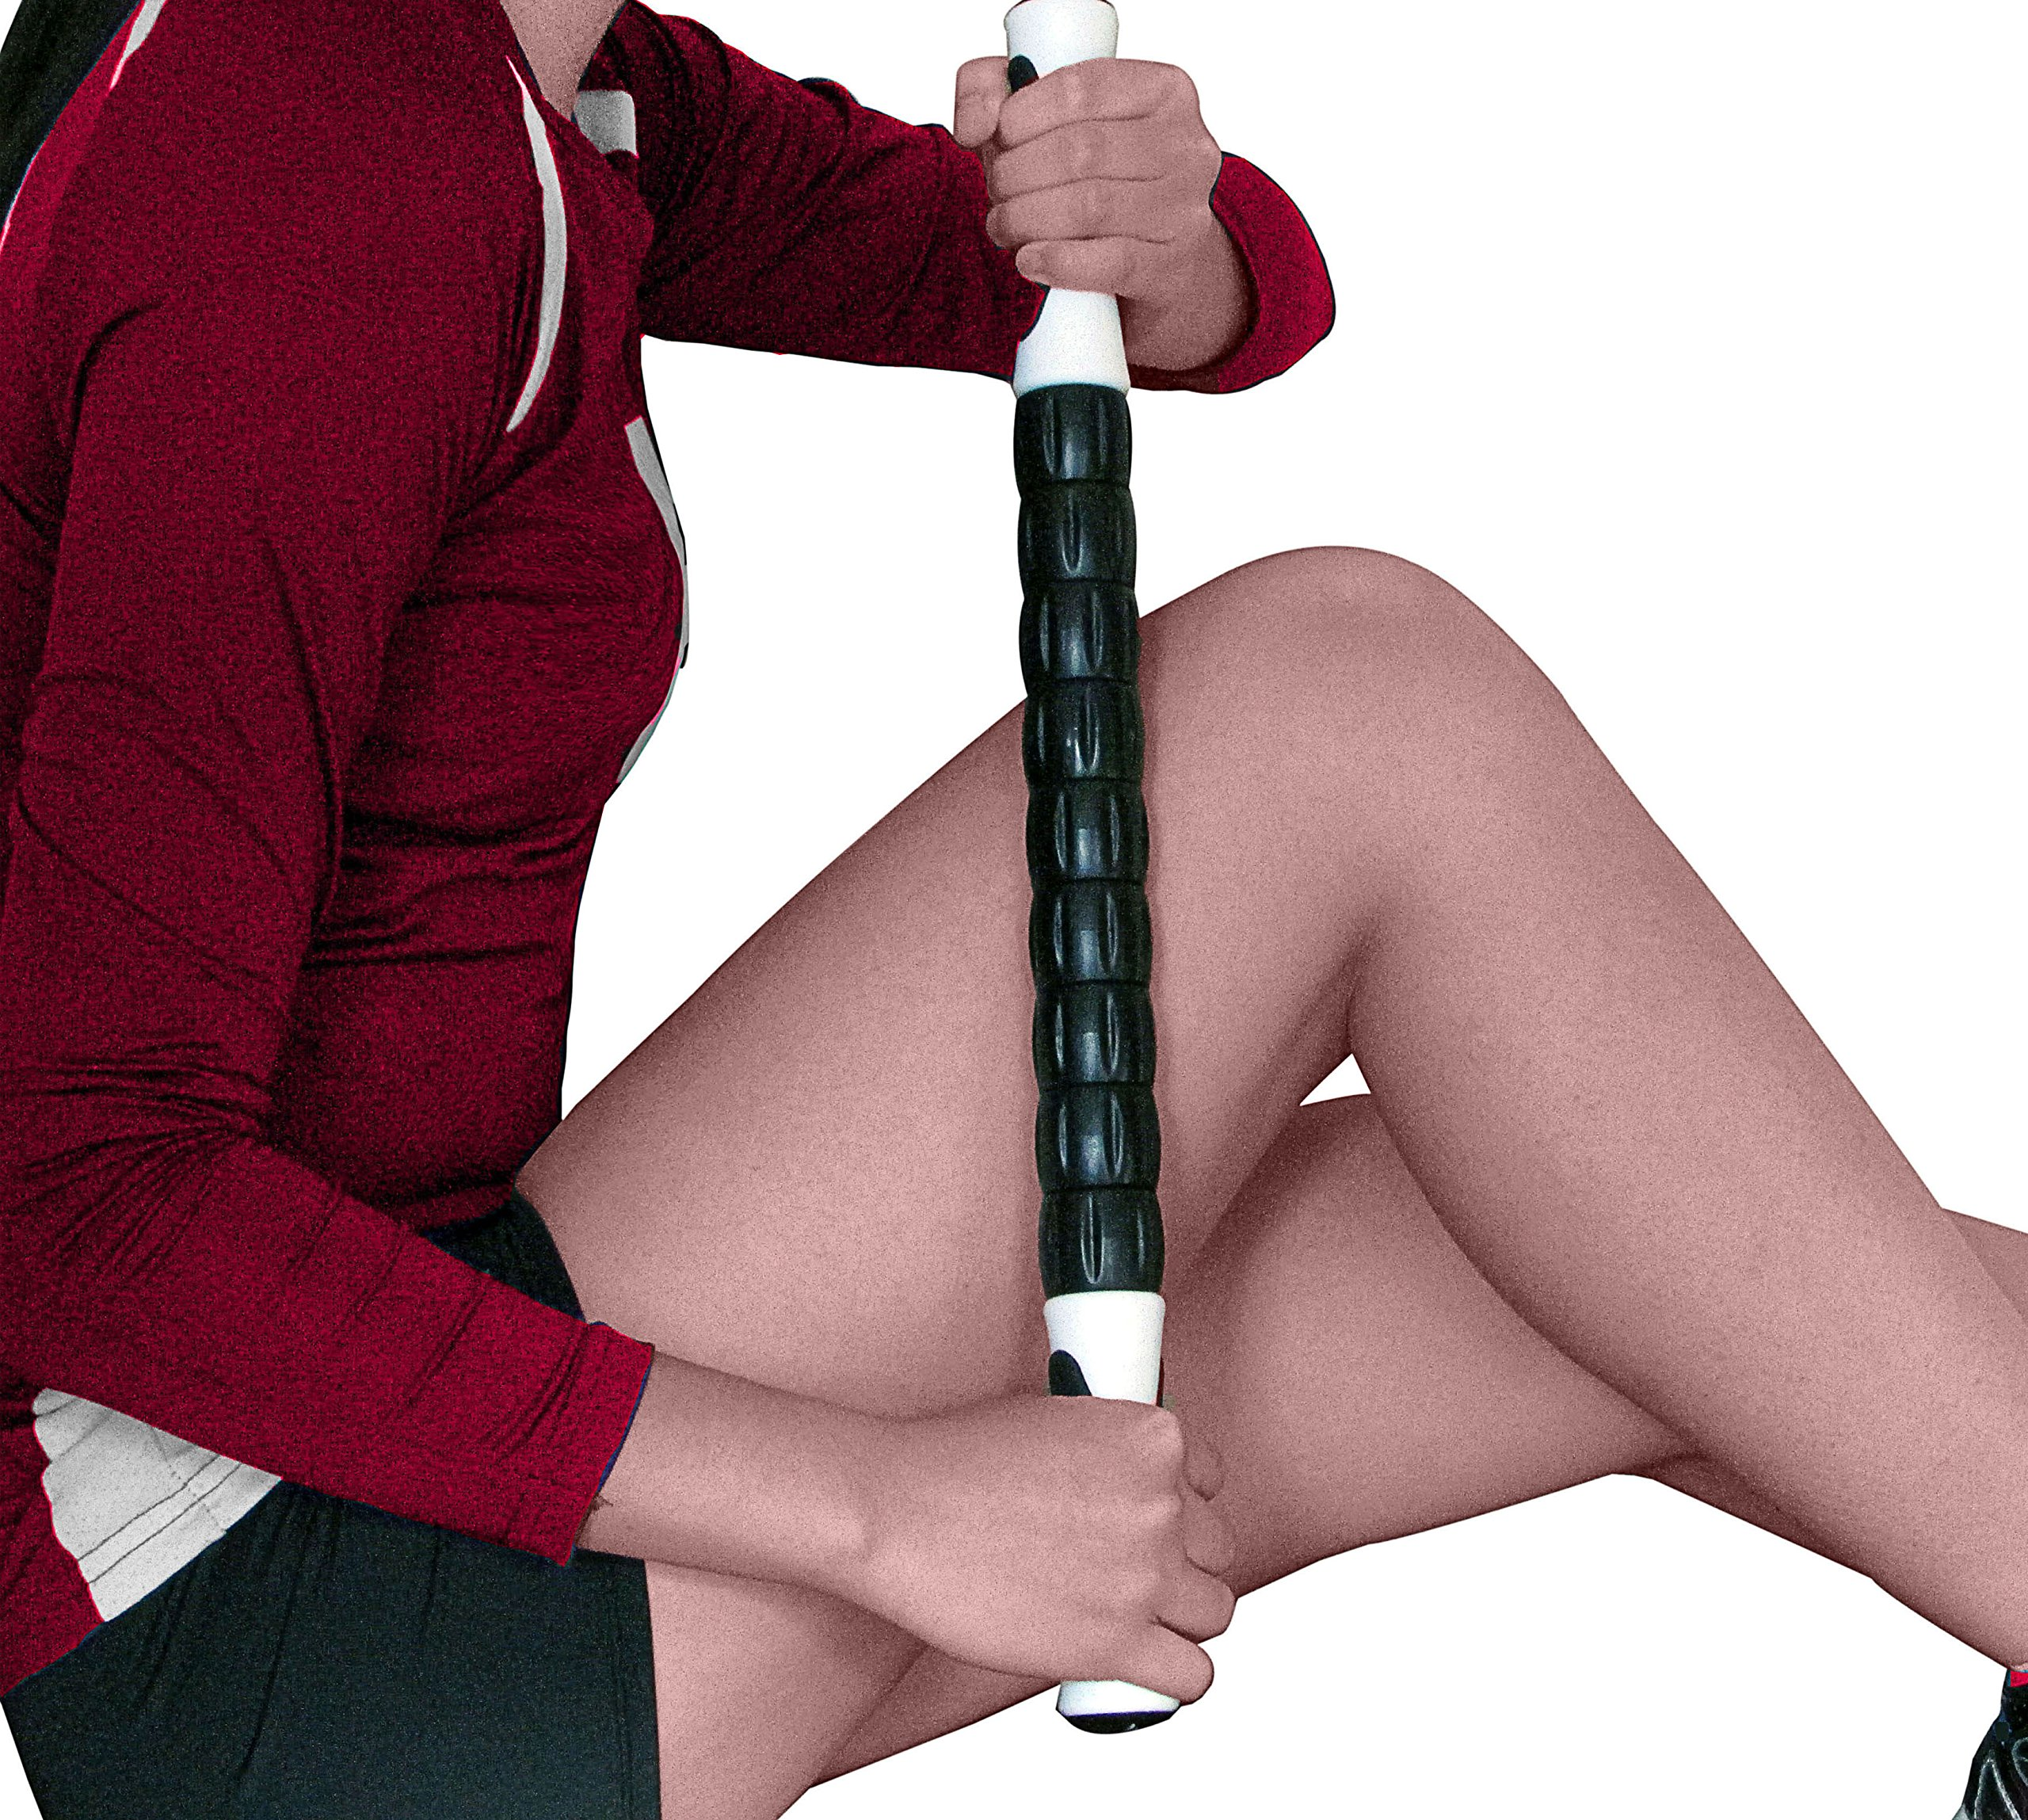 Top Rated Muscle Roller Massage Stick: A Sports Body Massager Tool-Release Myofascial Trigger Points, Reduce Muscle Soreness, Tightness, Leg Cramps and Back Pain, Rub Muscle for Relief and Recovery